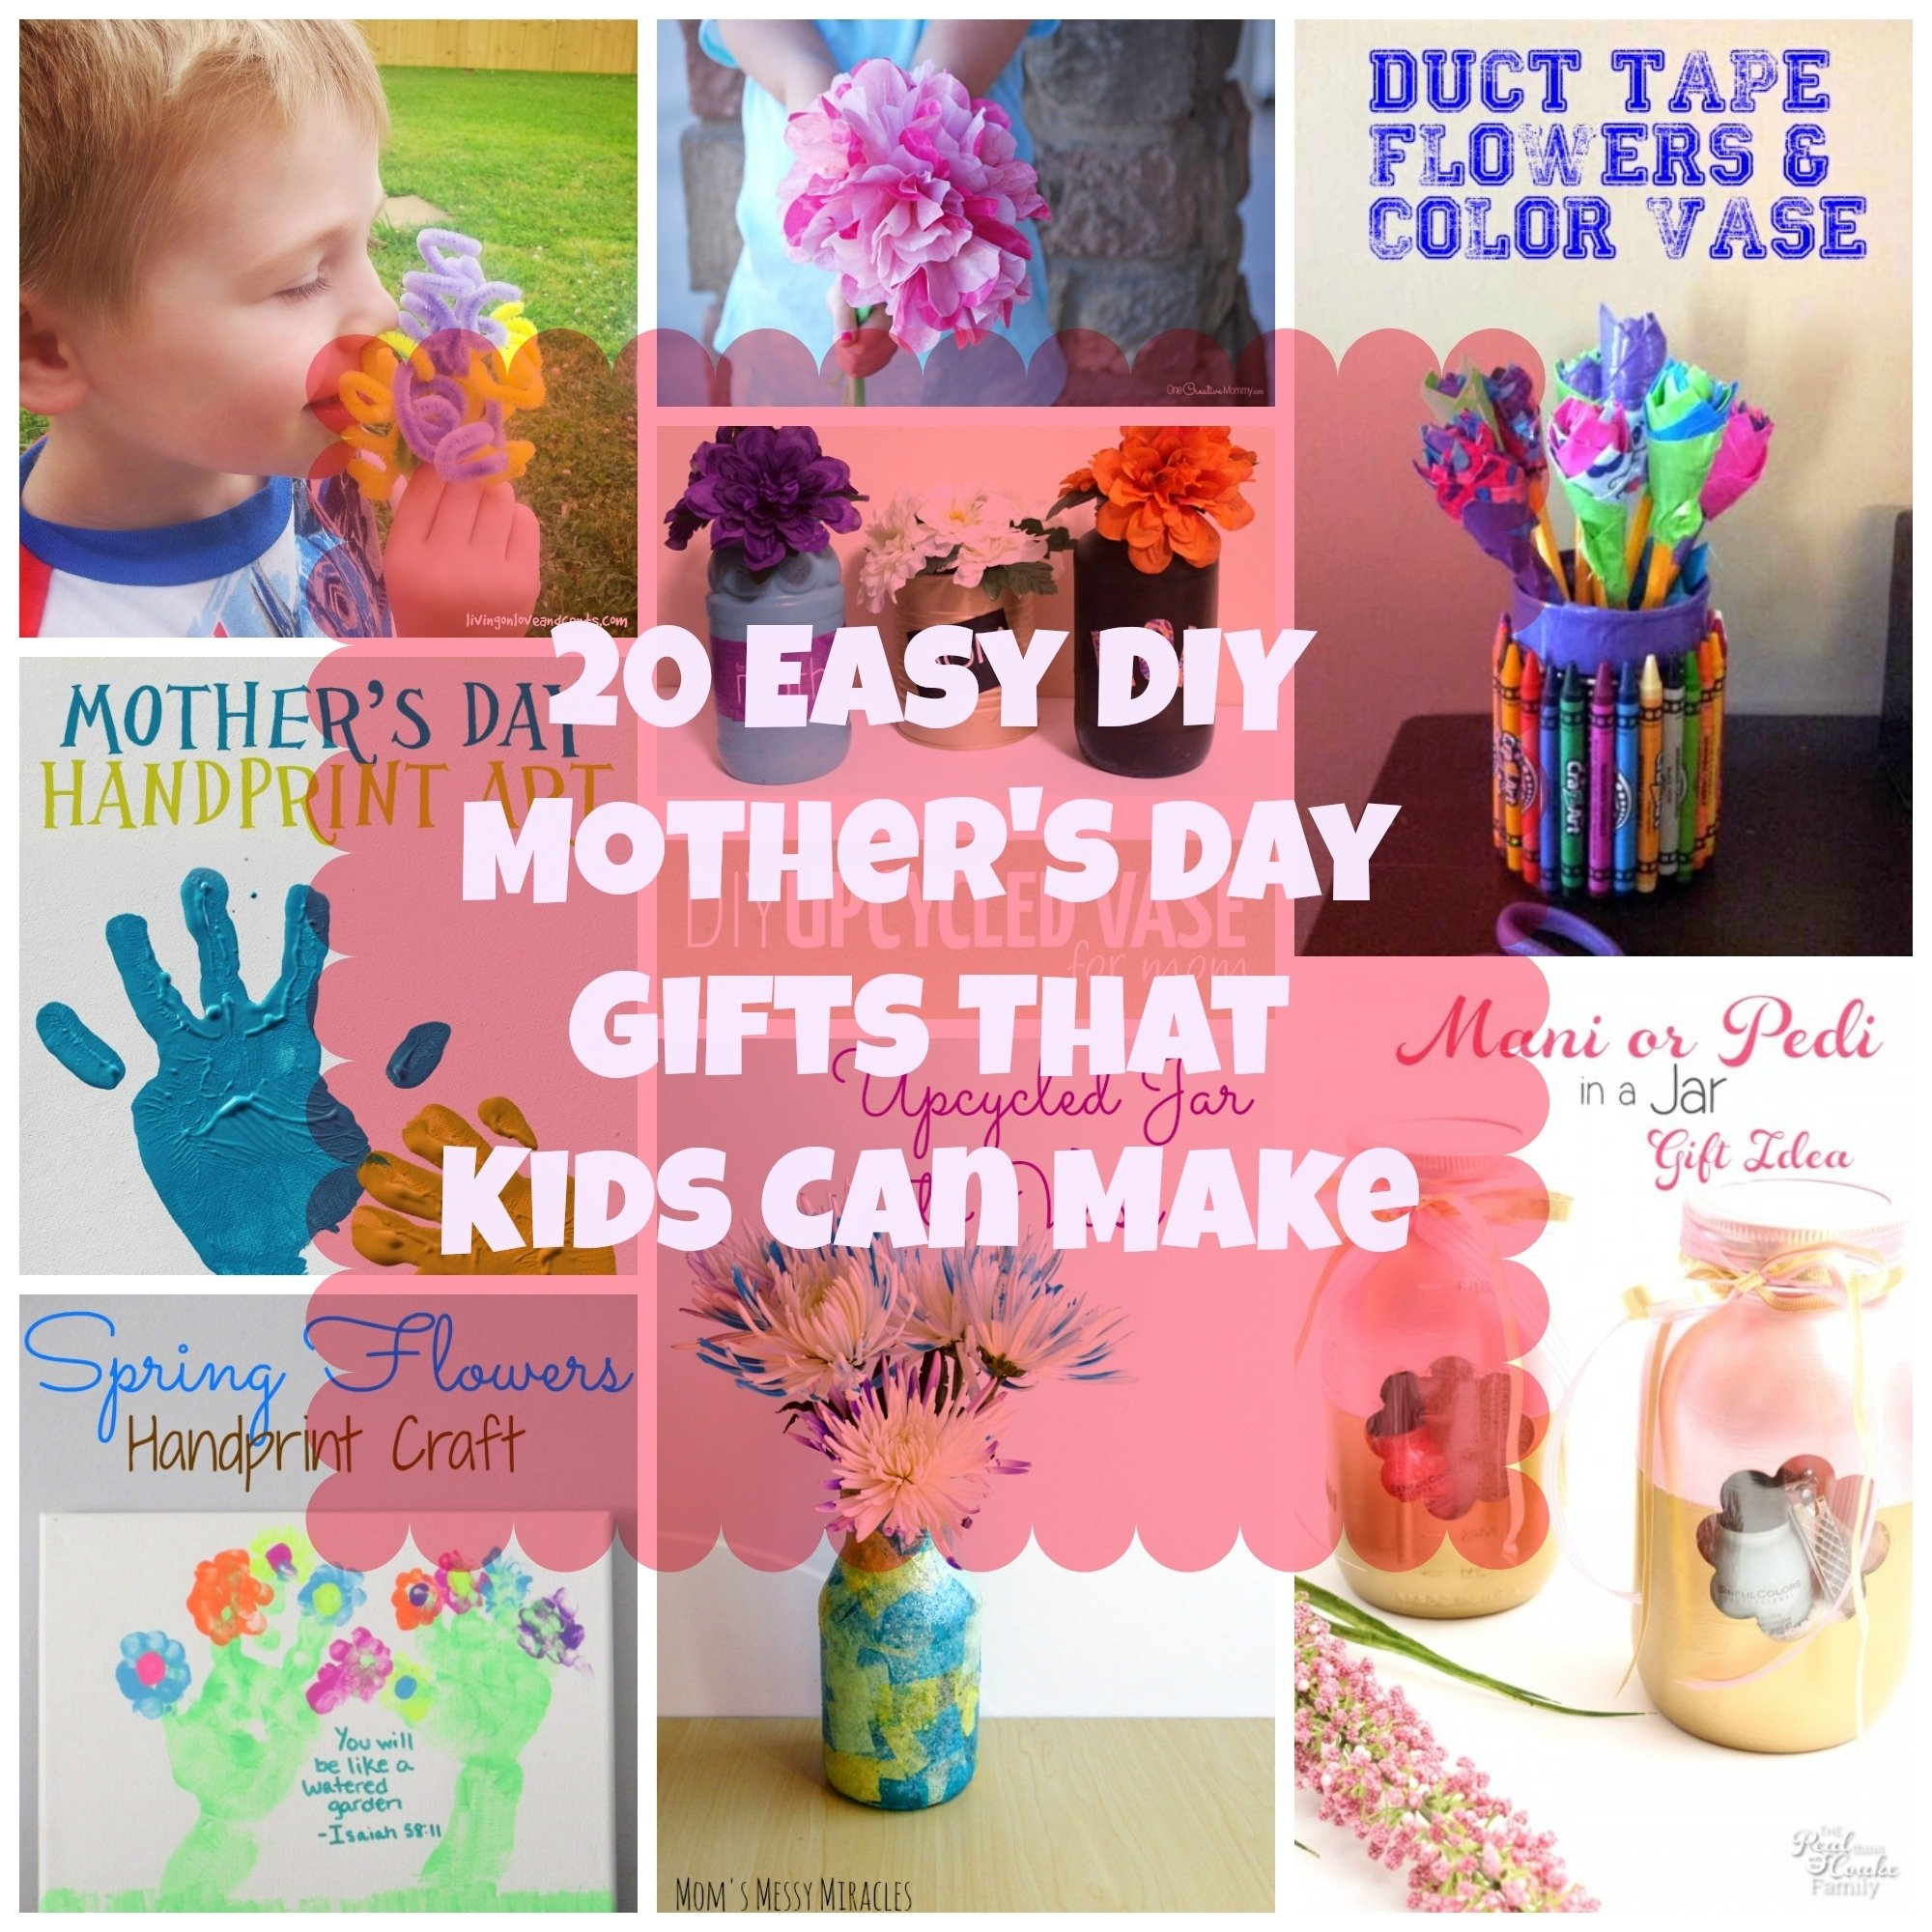 10 Most Popular Gift Ideas For Kids To Make 20 easy diy mothers day gifts that kids can make loversiq 2 2020